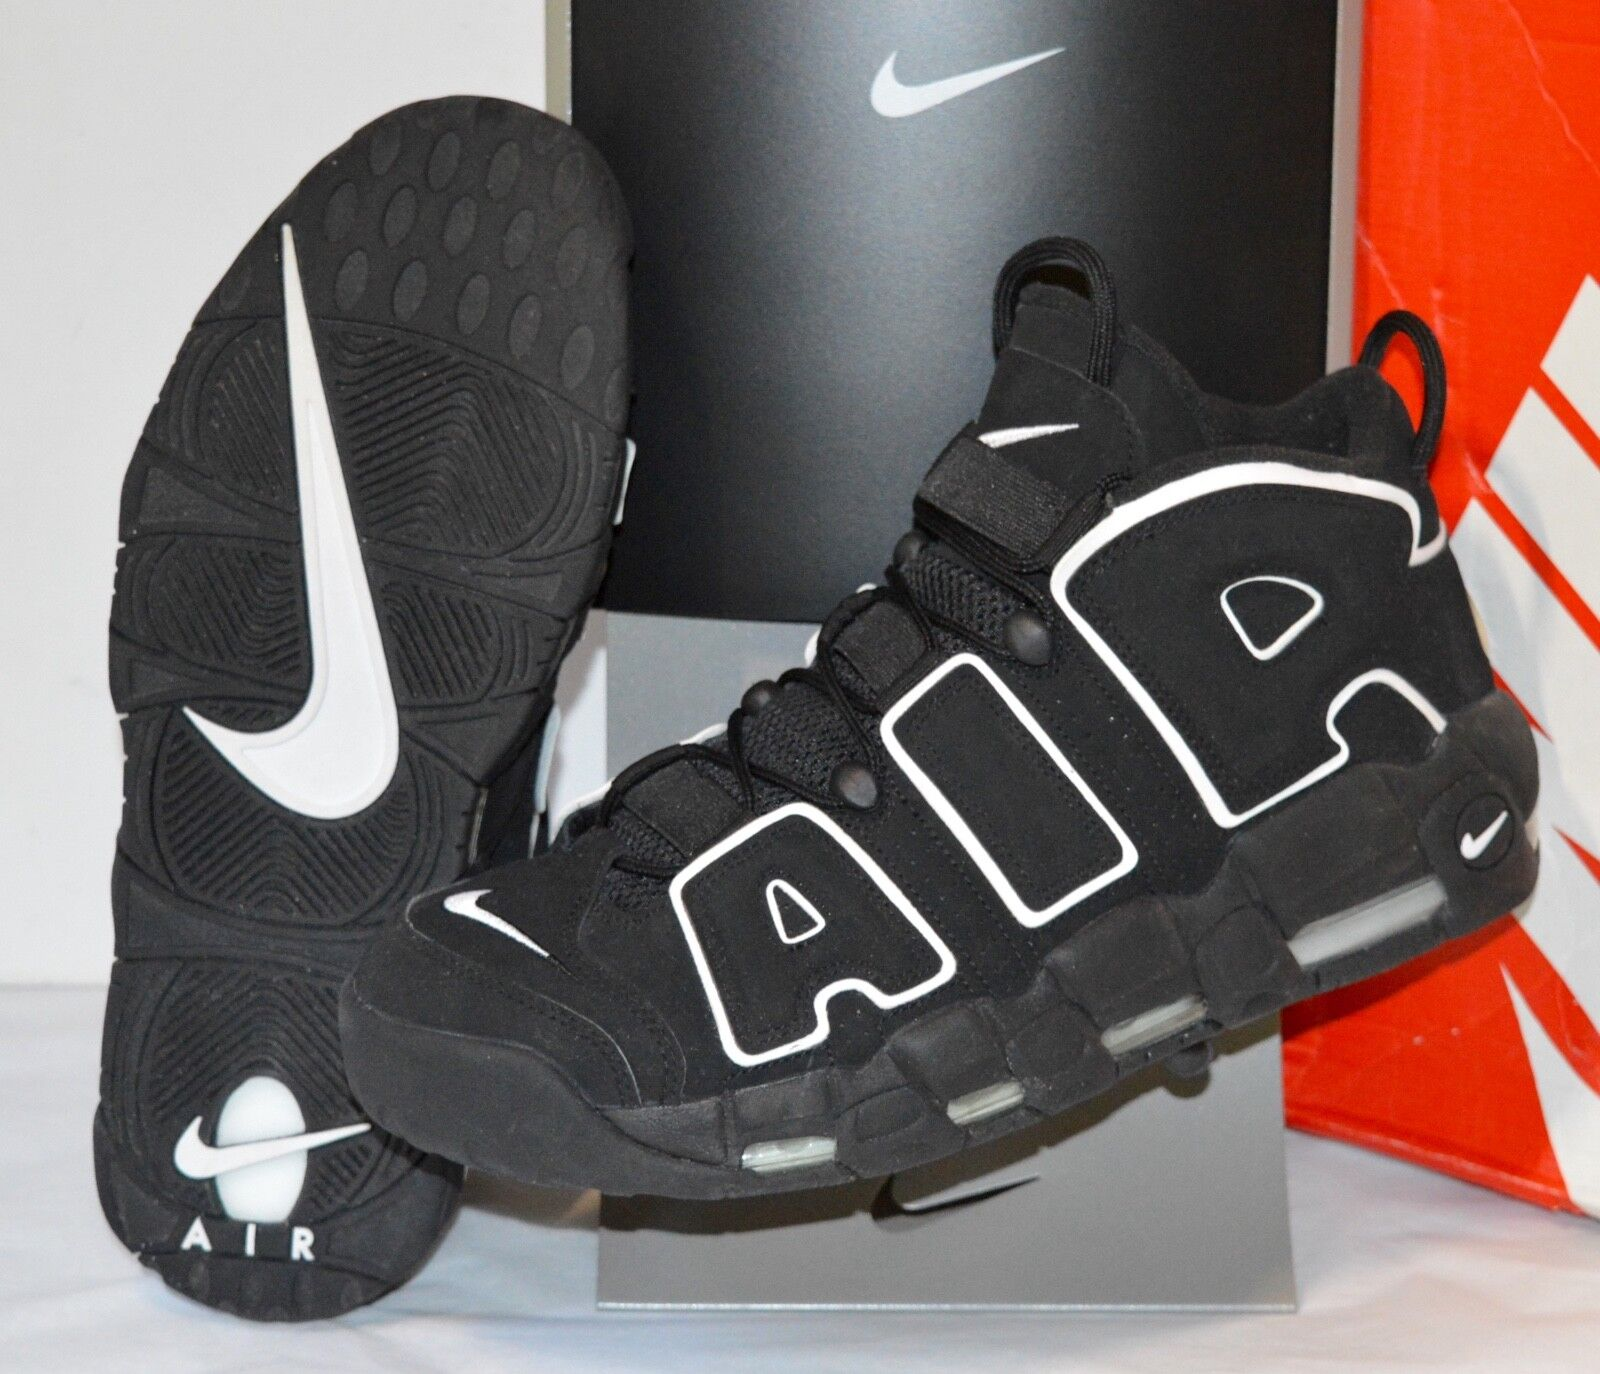 Worn Worn Worn Once Nike Air More Uptempo 2016 Retro Black White sz 12 Scottie Pippen Max 3fd5b9